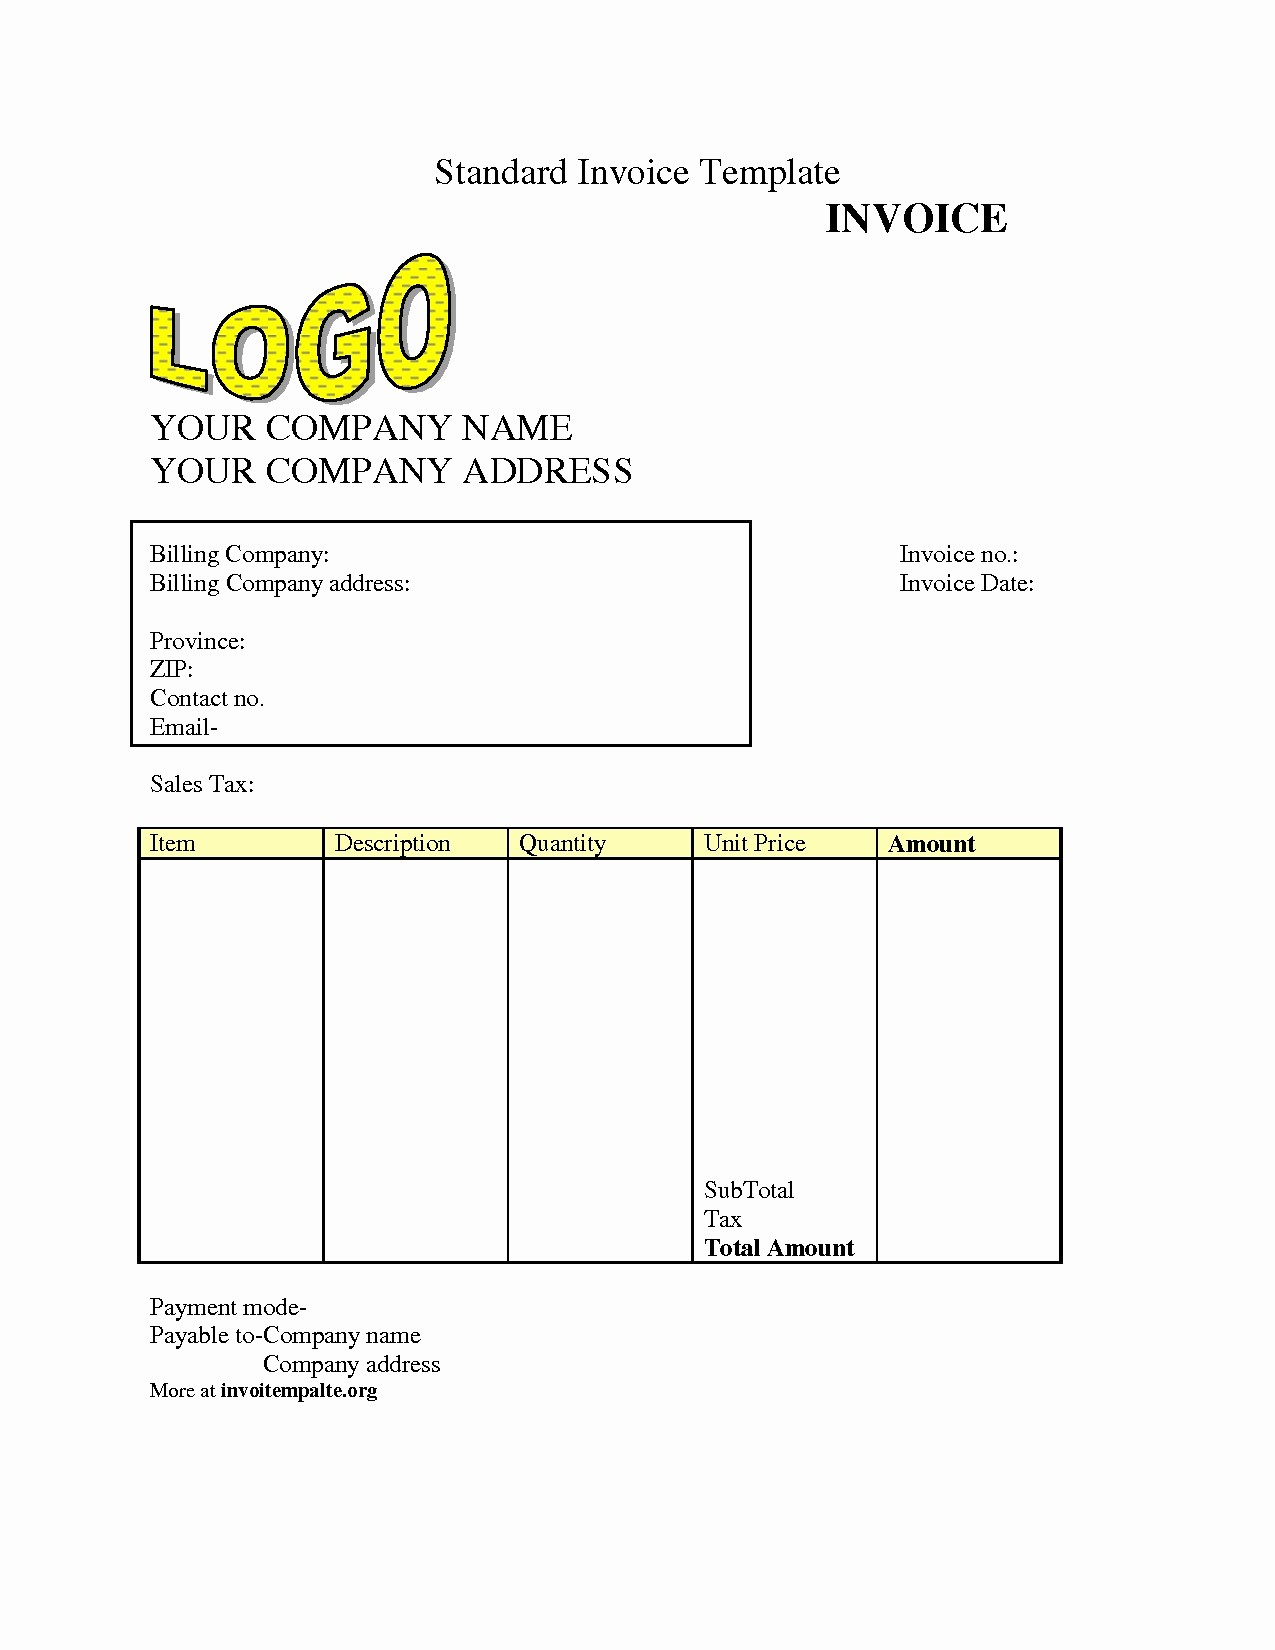 Create An Invoice Free Template Best Of Invoice Template Download Free Invoice Template Ideas